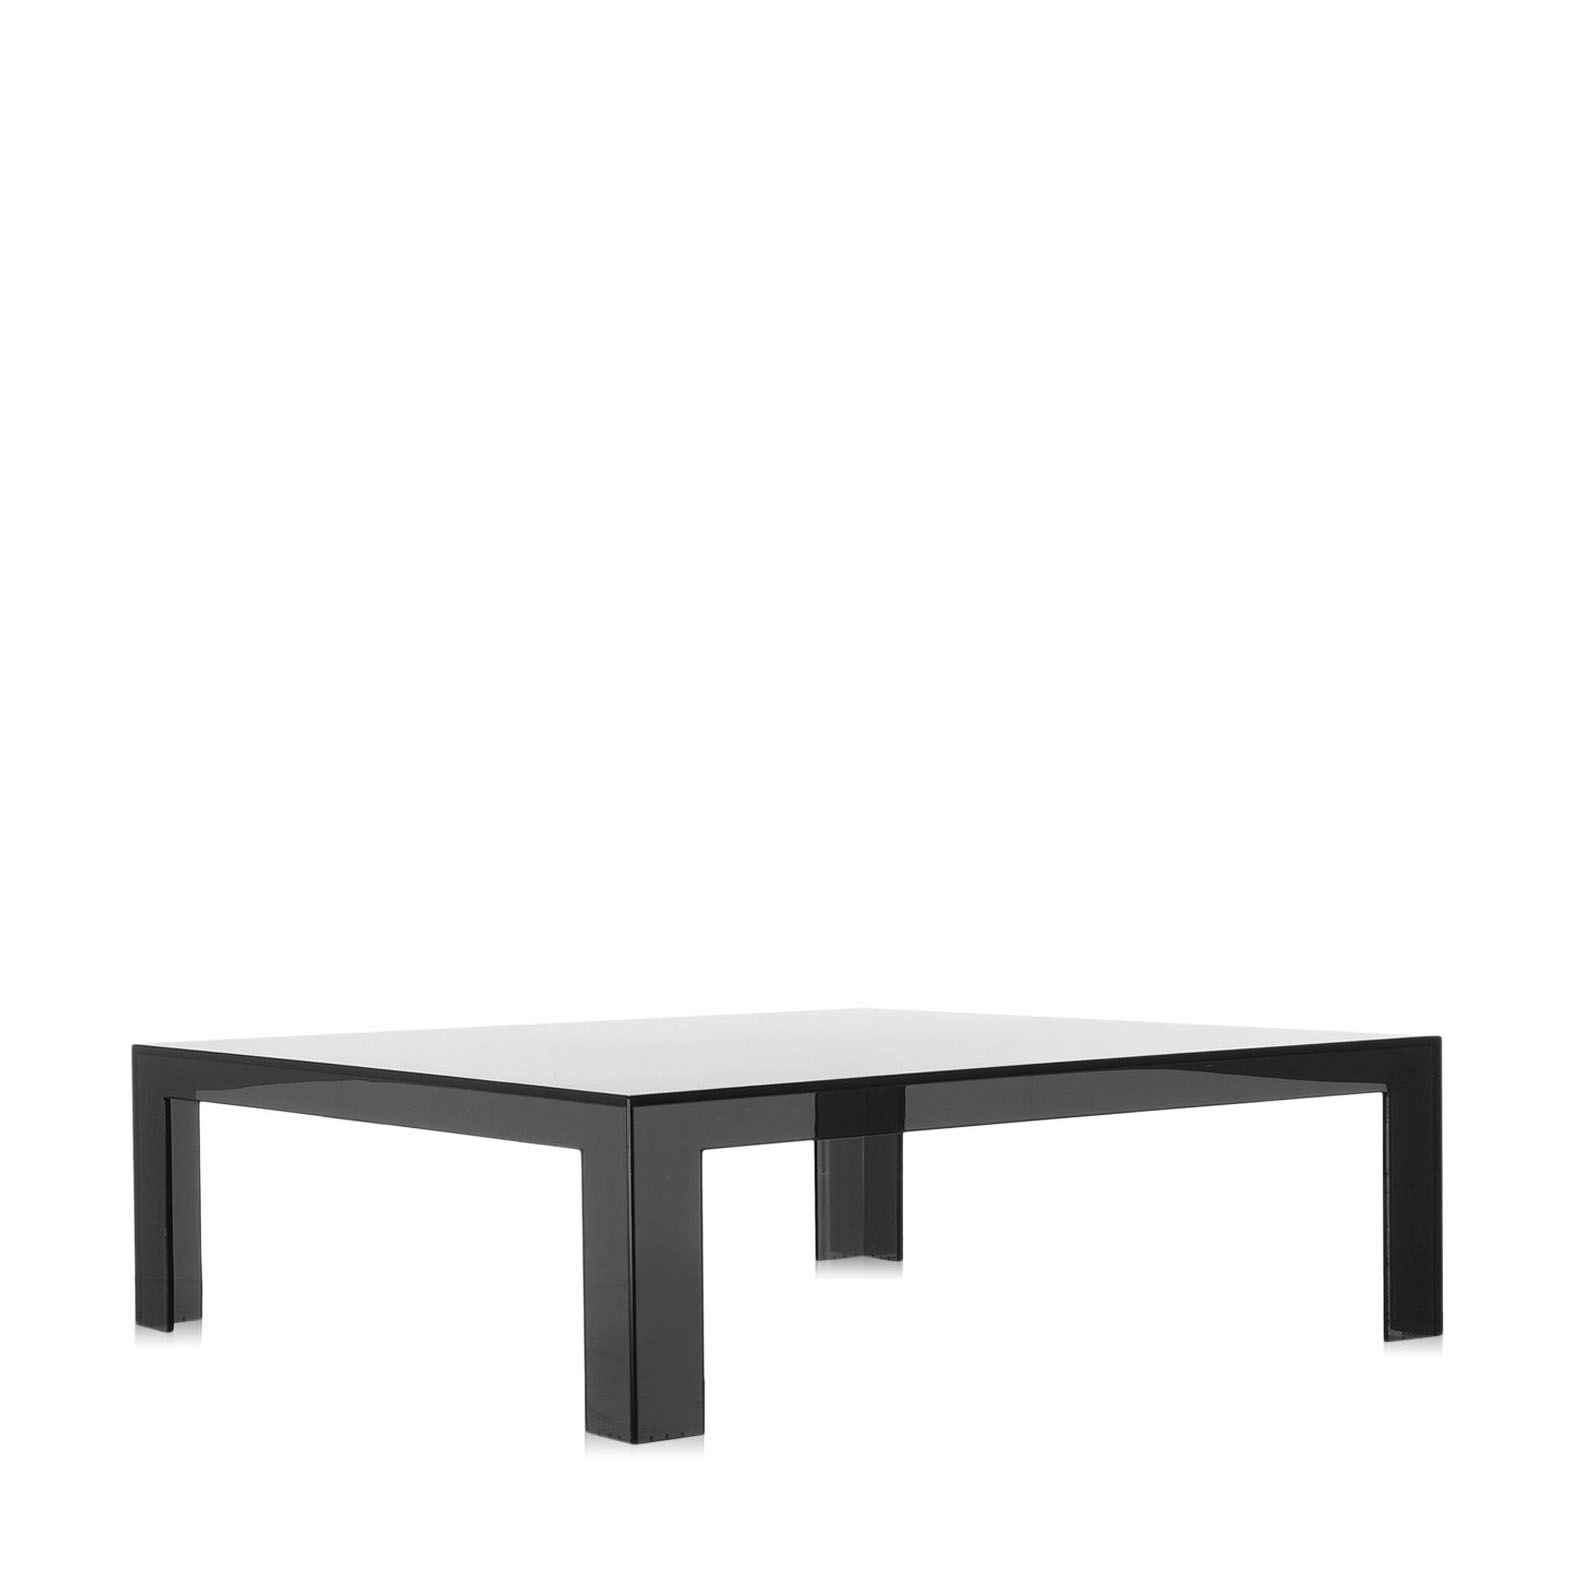 Buy Kartell Invisible Square Coffee Table From Connections At Home - Kartell invisible coffee table